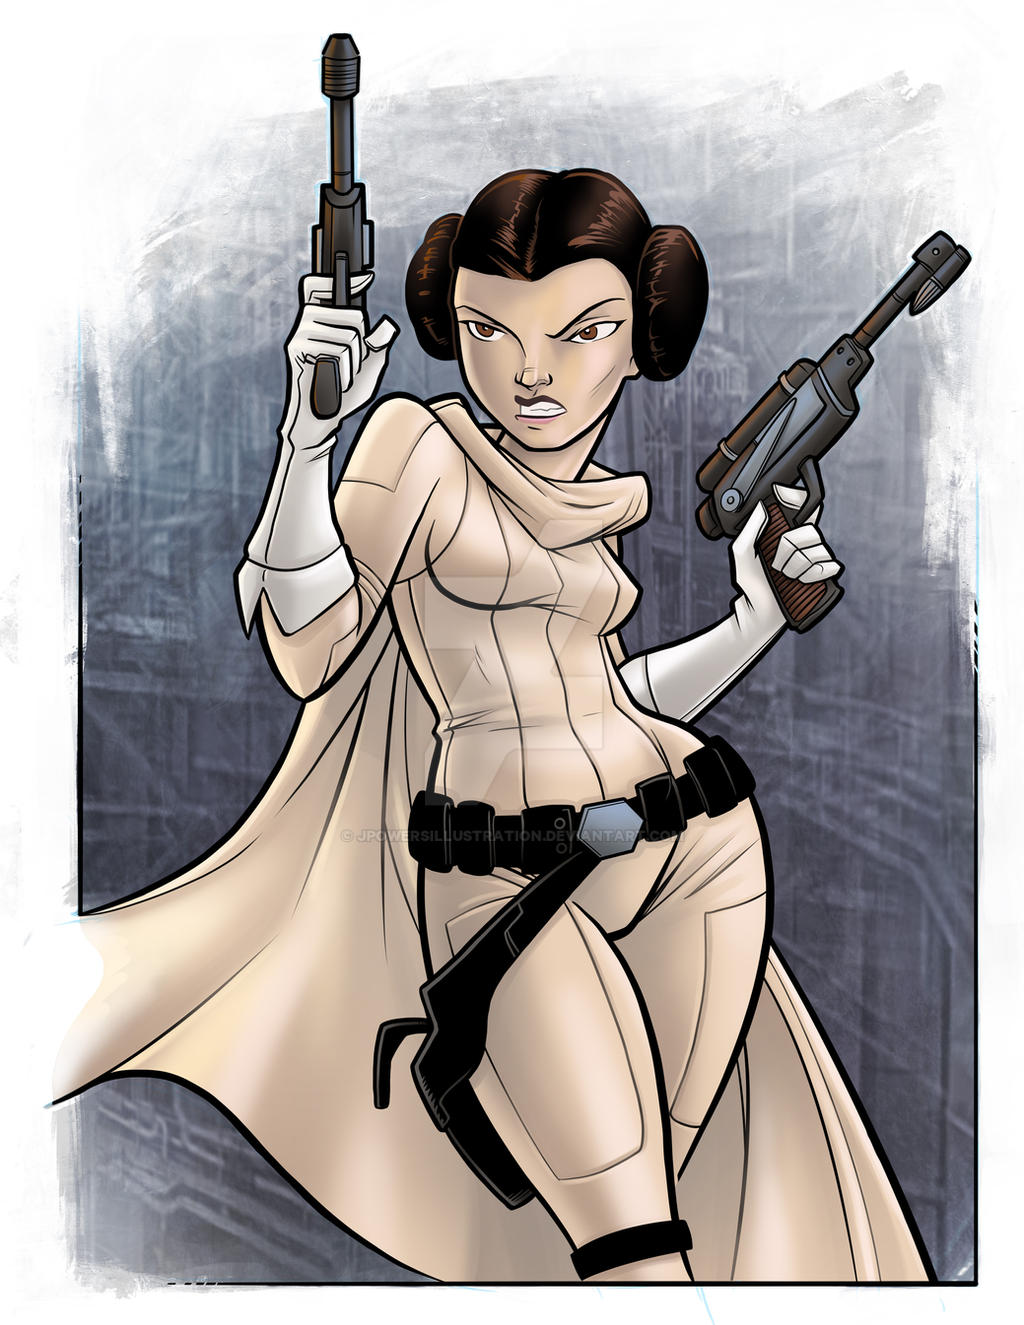 Princess Leia by jpowersillustration